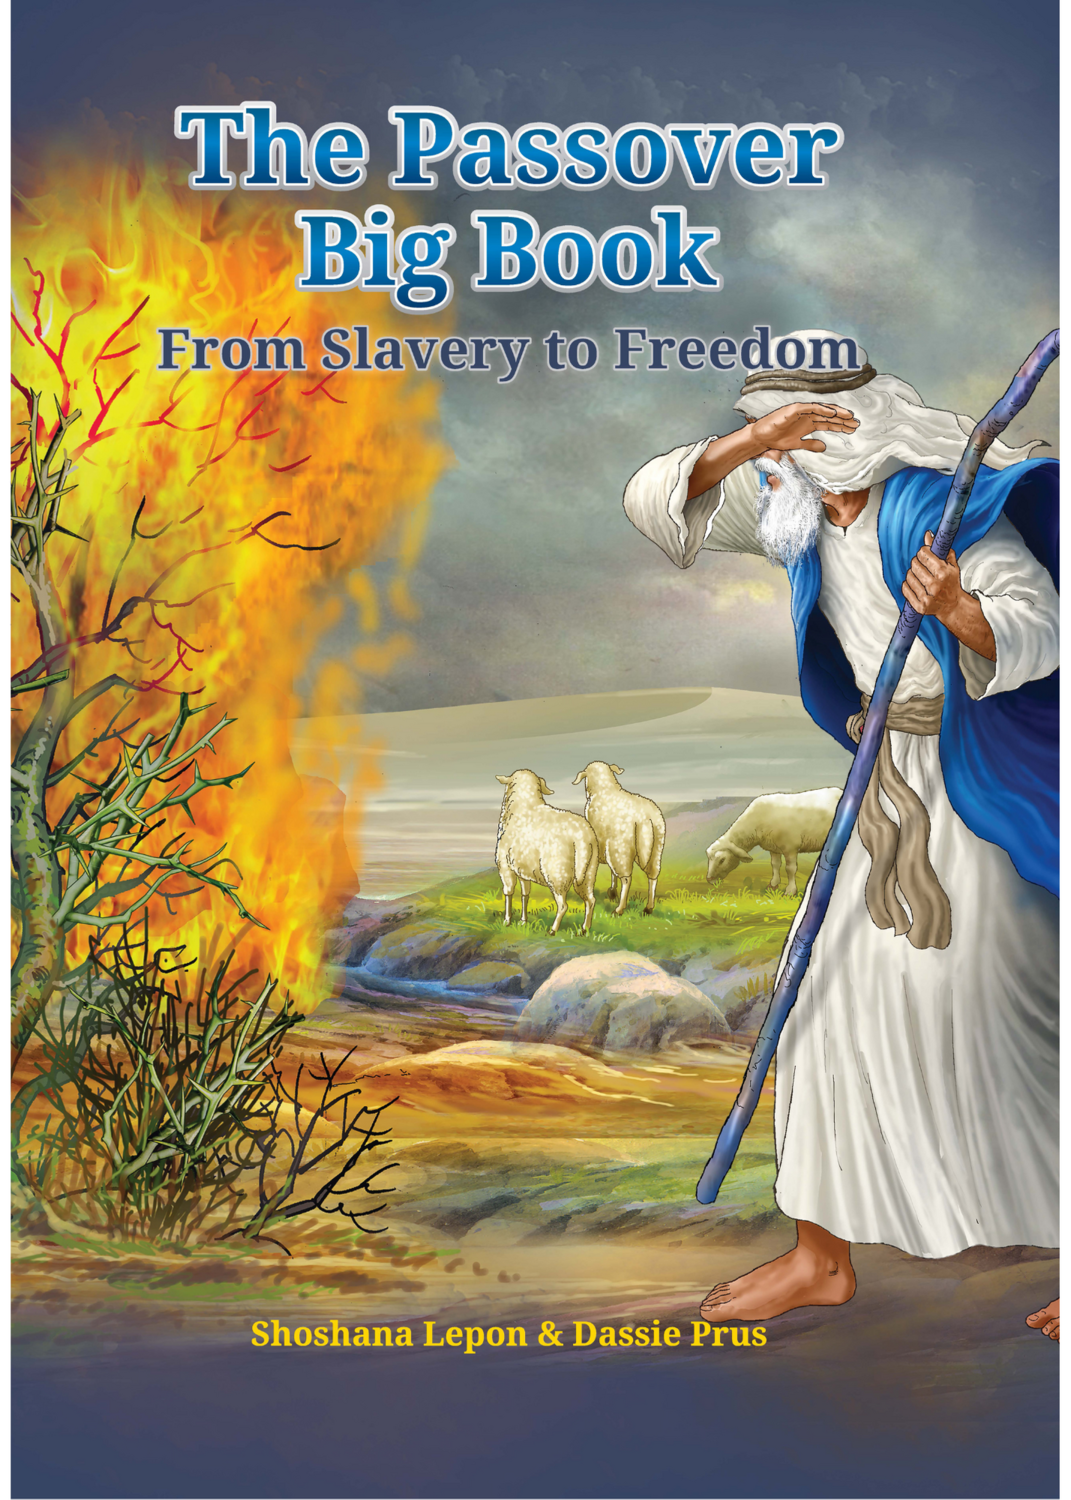 The Passover Big Book - From Slavery to Freedom JUMBO 15x21